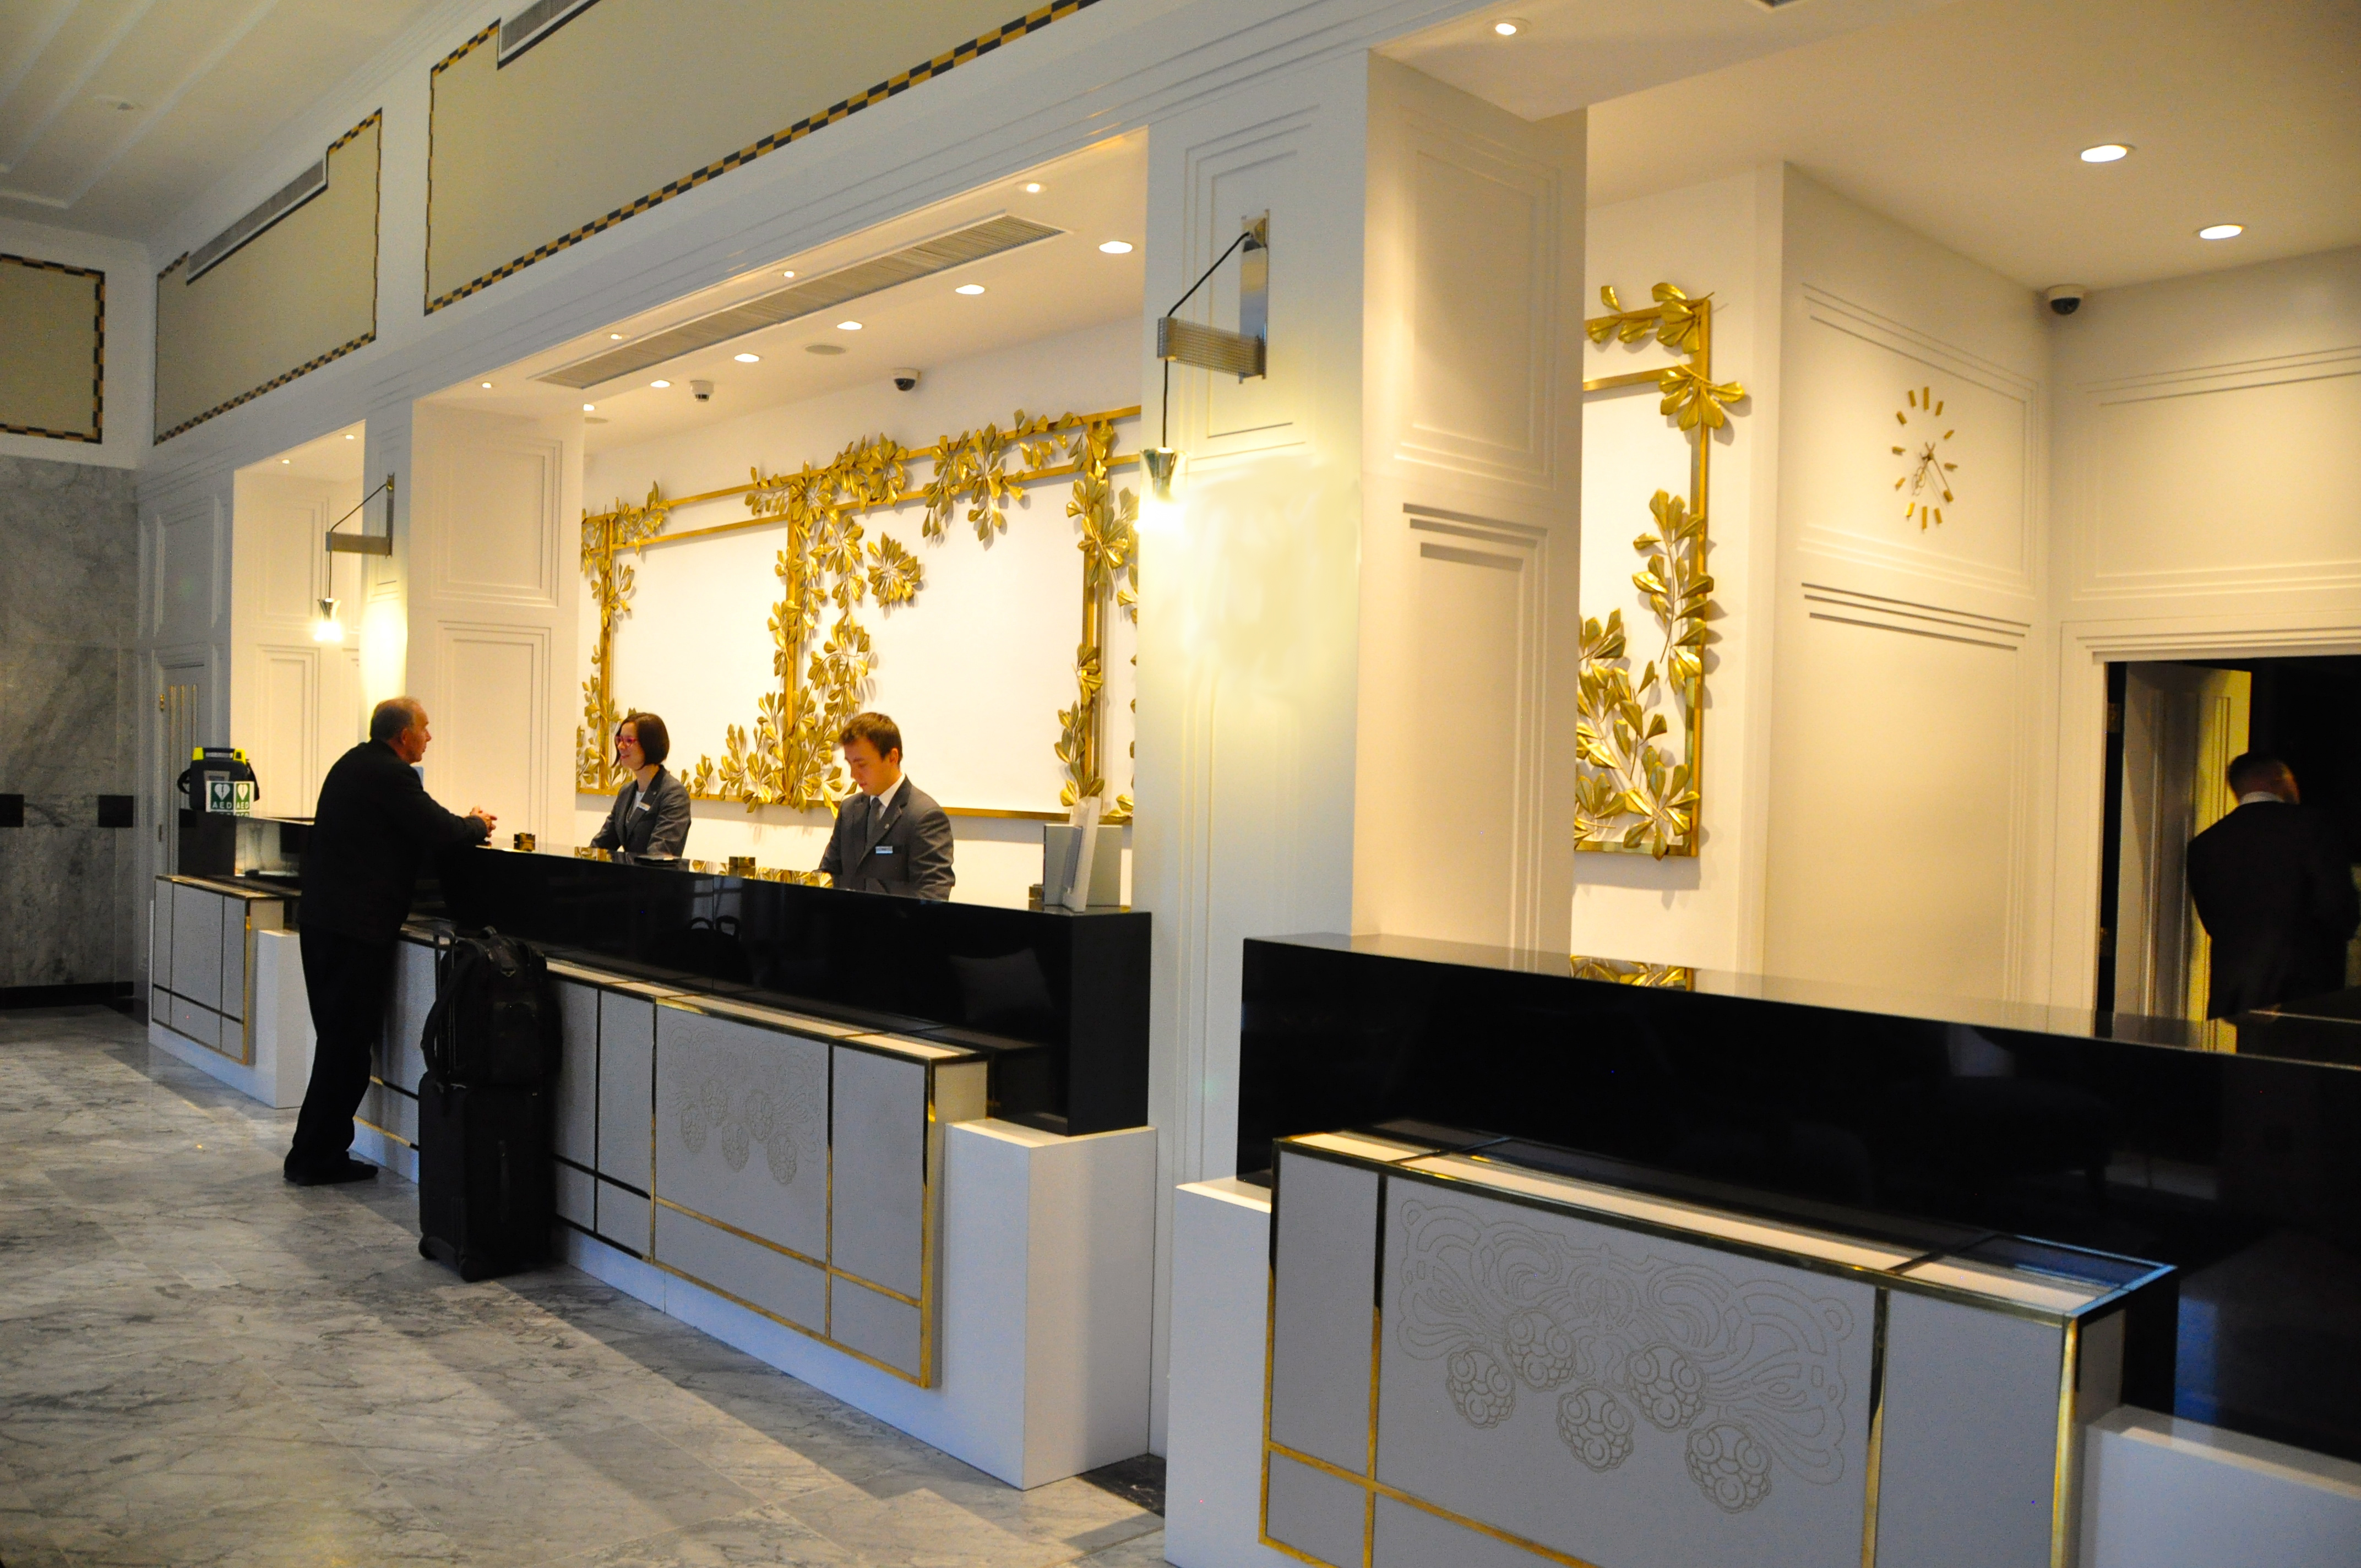 Lobby of the Bristol, Warsaw - a Starwood Luxury Collection Property